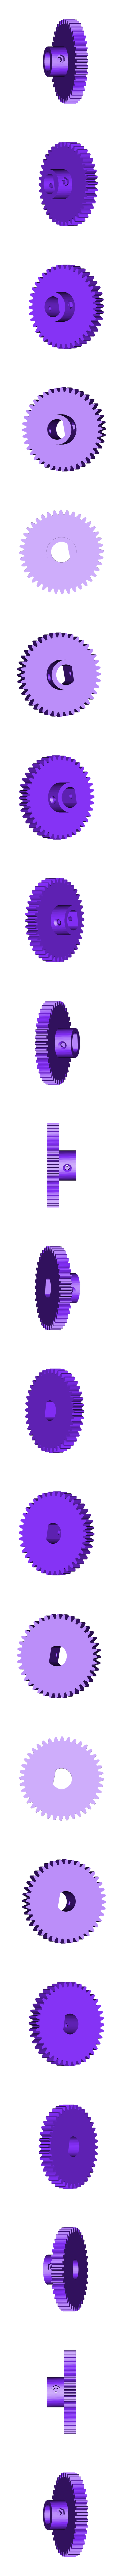 OpenRC_F1_250scaled_-_Component12-1.STL Download free STL file OpenRC F1 250% scaled • Template to 3D print, colorFabb